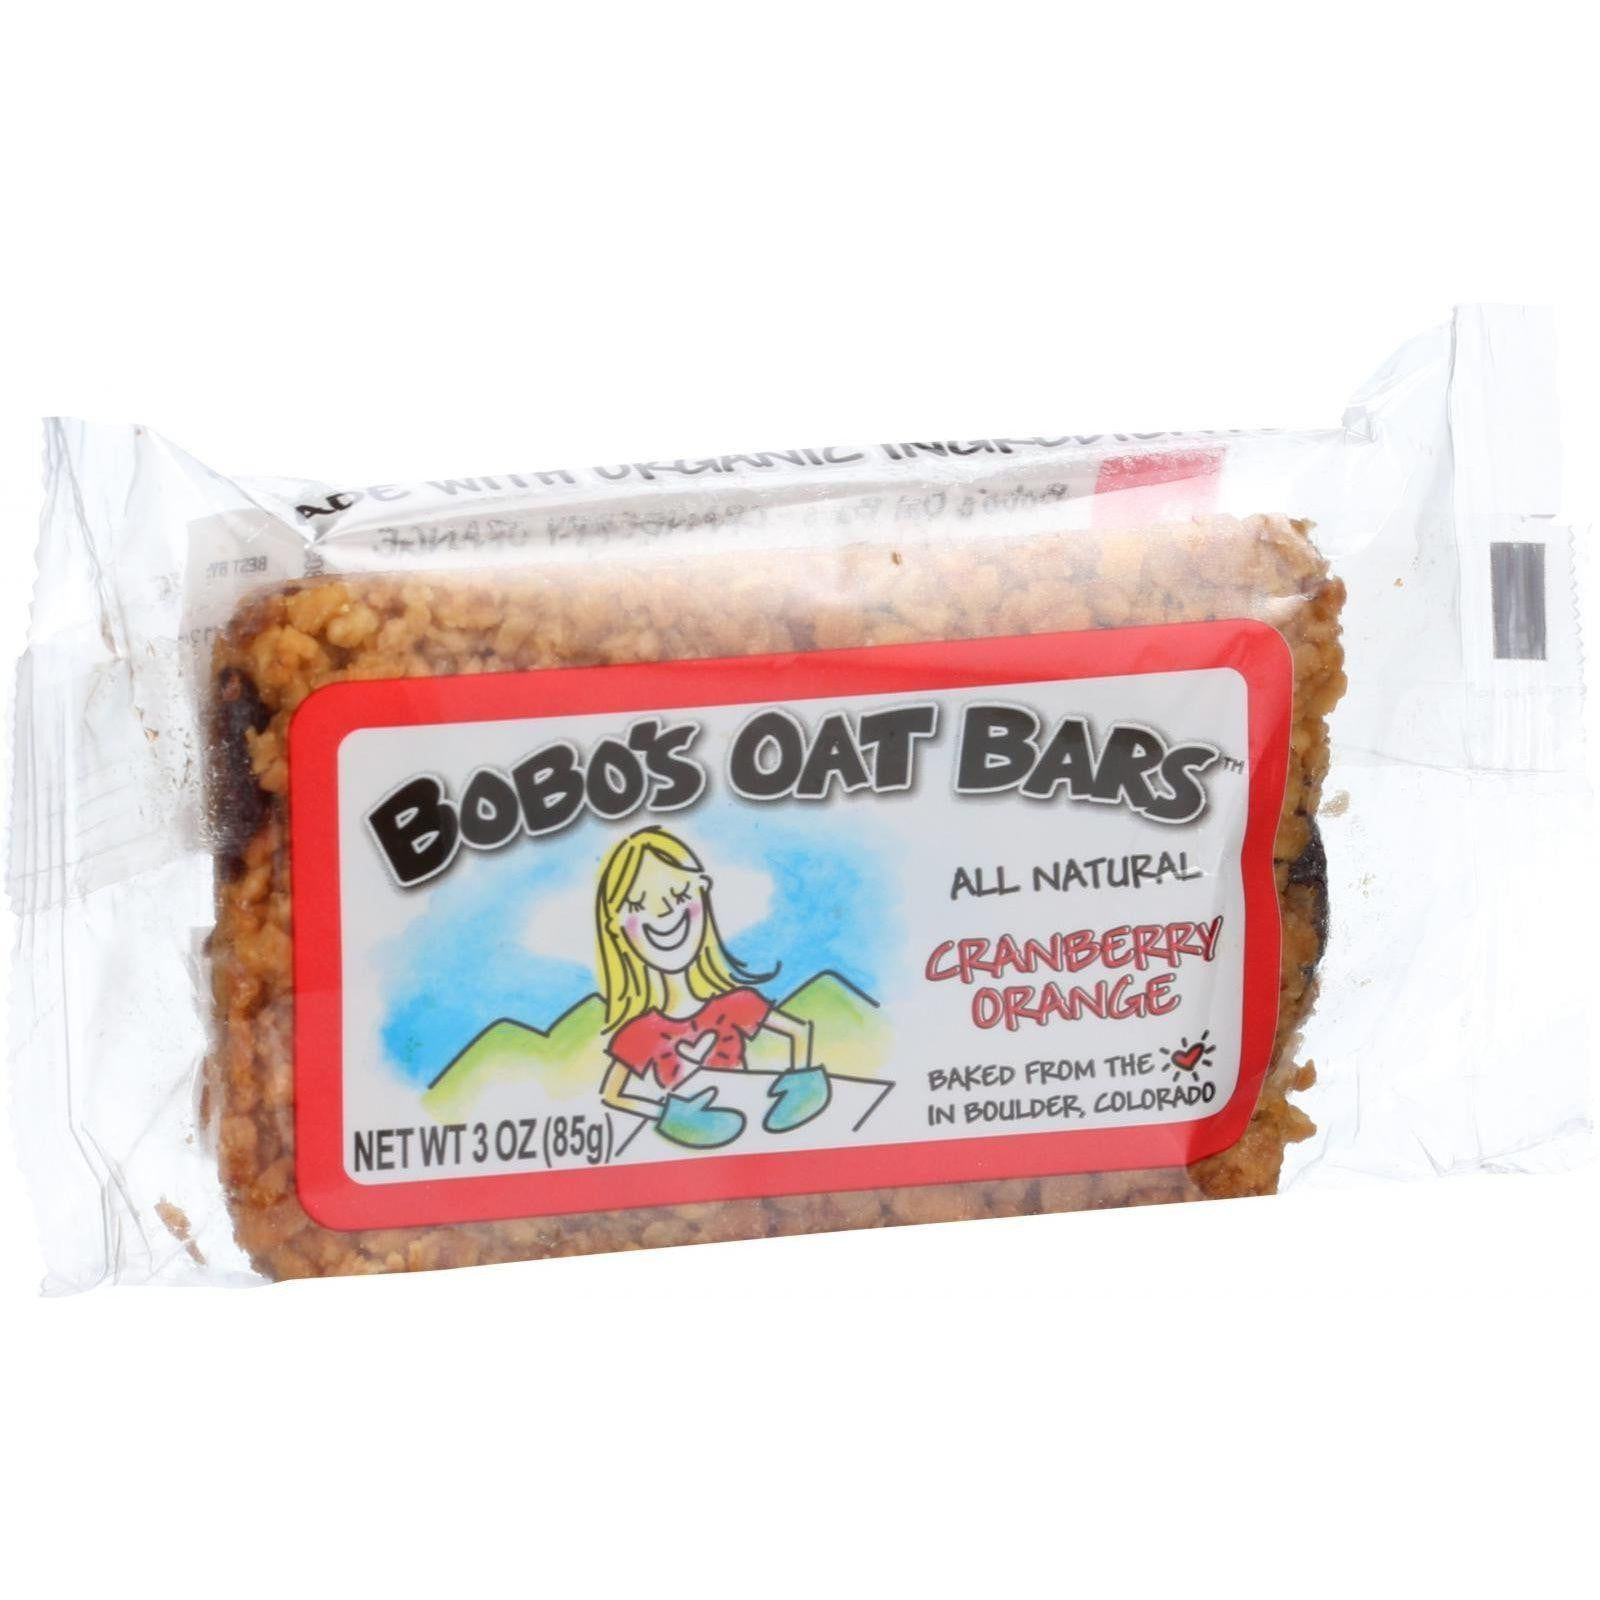 Bobo's Oat Bars - All Natural - Cranberry Orange - 3 Oz Bars - Case Of 12